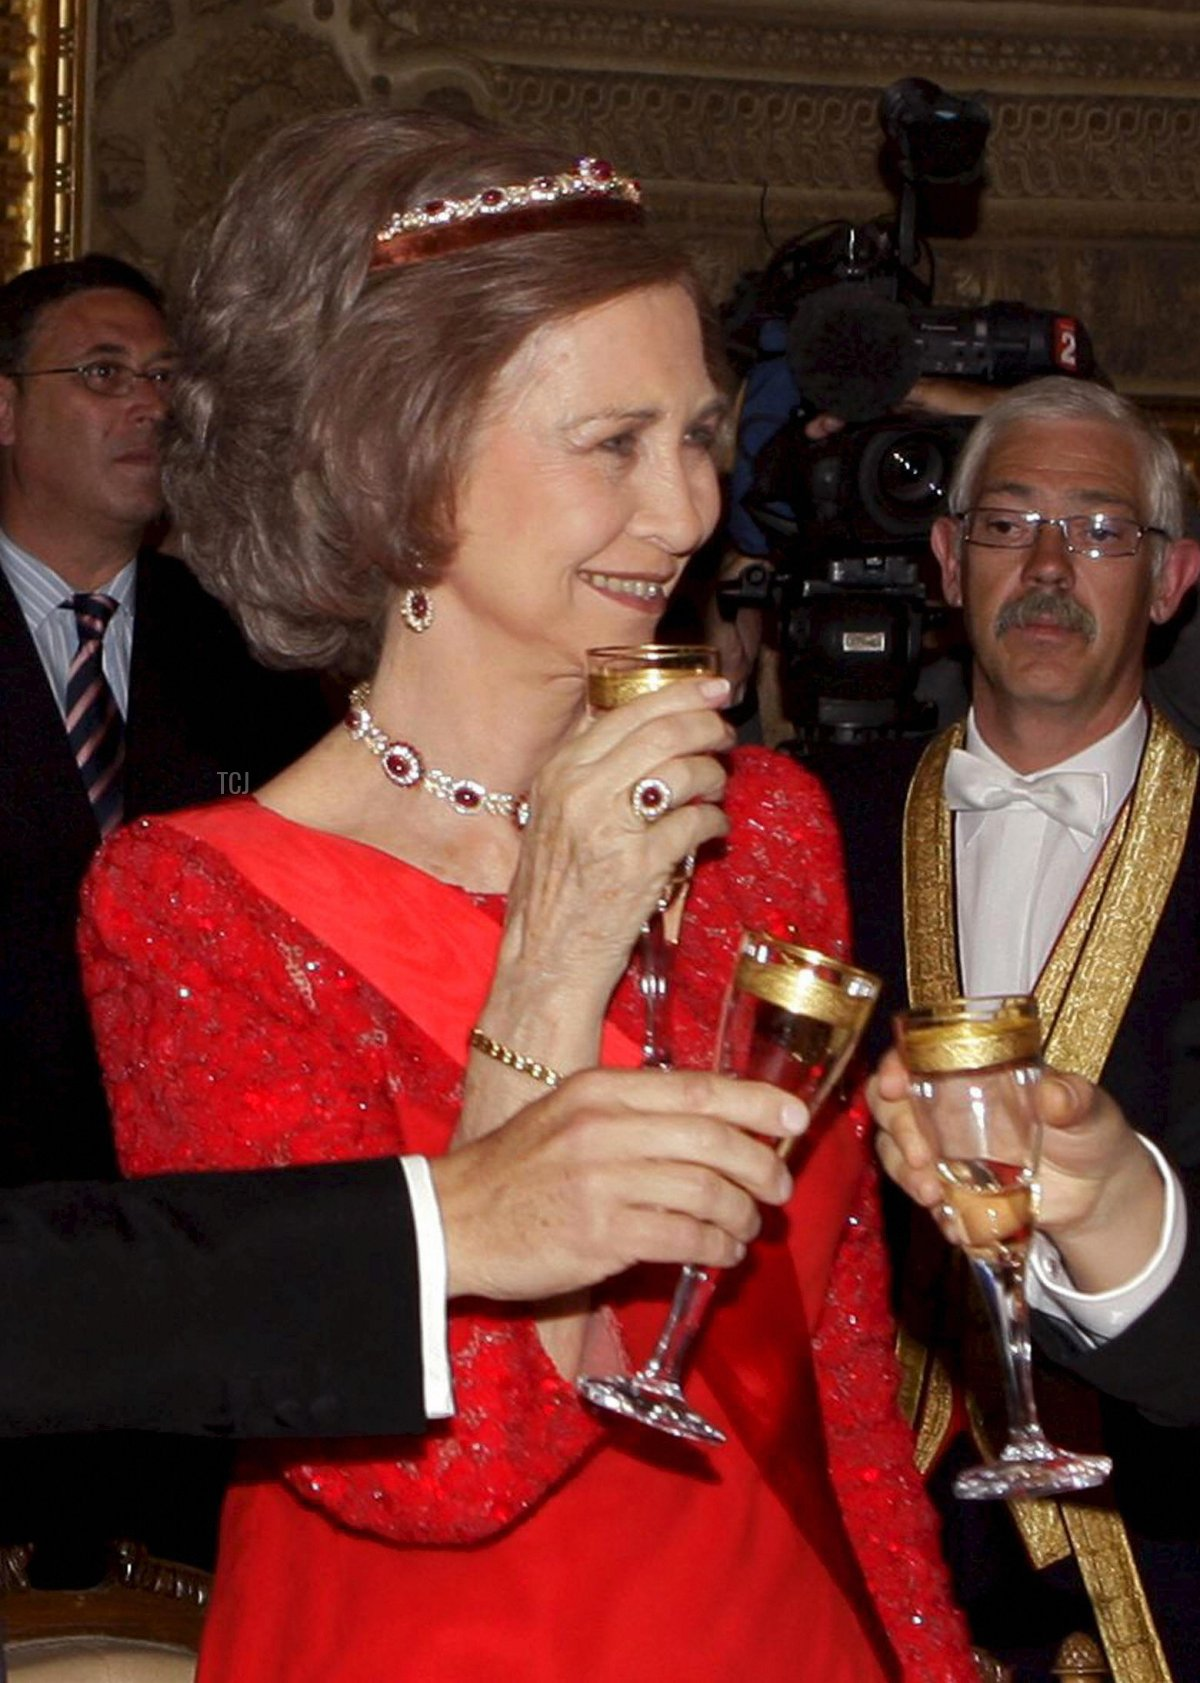 French President Nicolas Sarkozy (L) shares a toast with Spain's Prime Minister Jose Luis Rodriguez Zapatero (R) in front of Spain's Queen Sofia during a gala dinner at the Royal Palace in Madrid on April 27, 2009